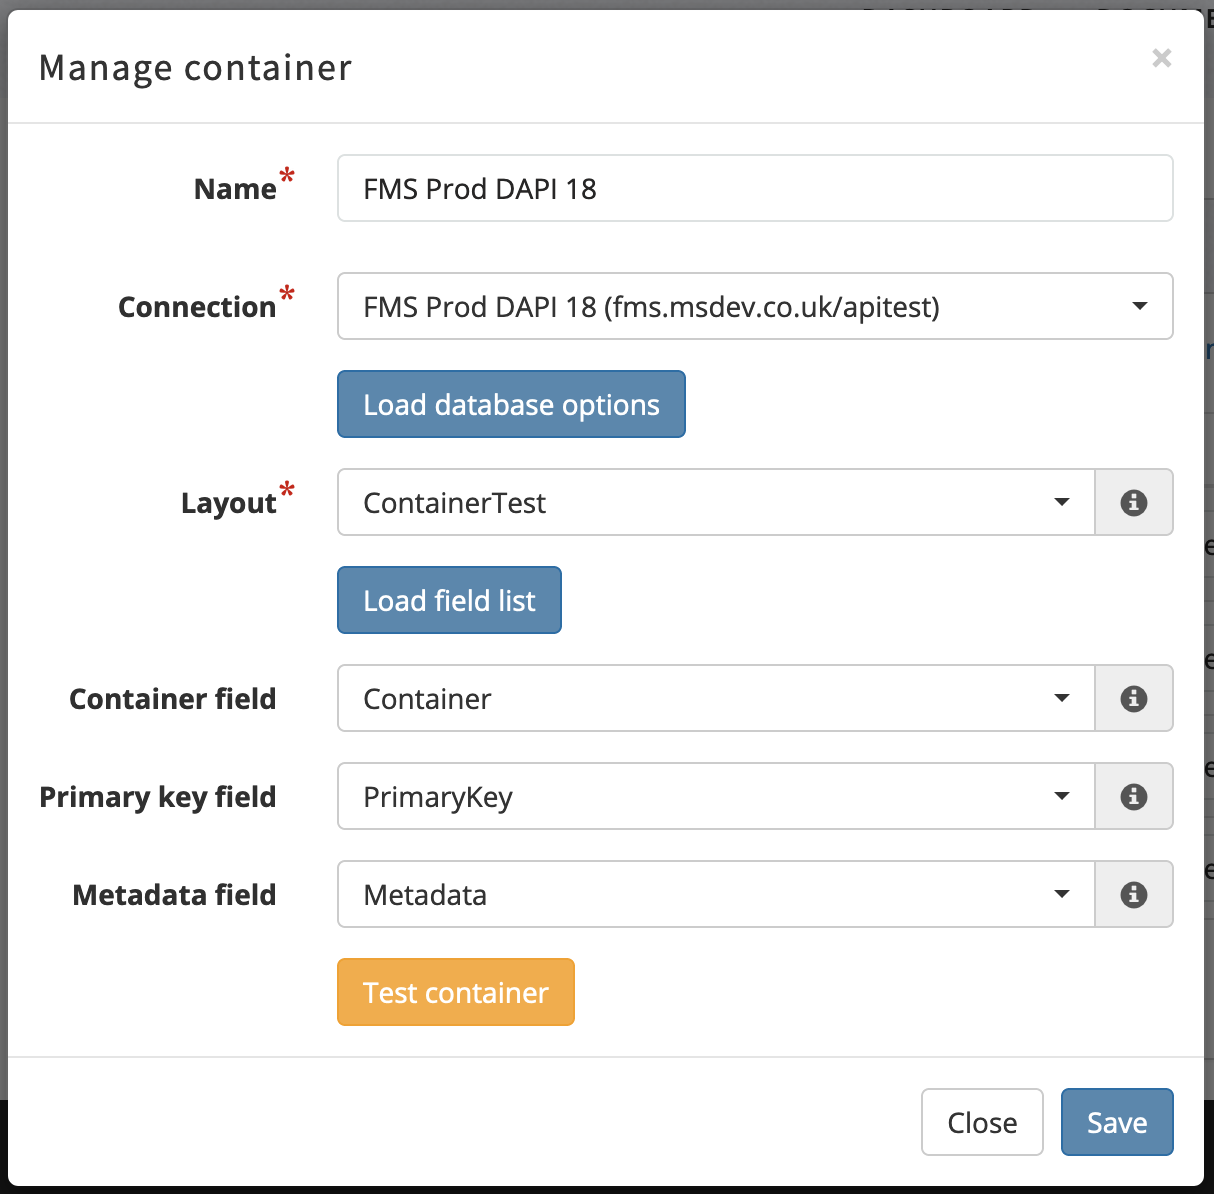 Managing Containers through our easy-to-use interface